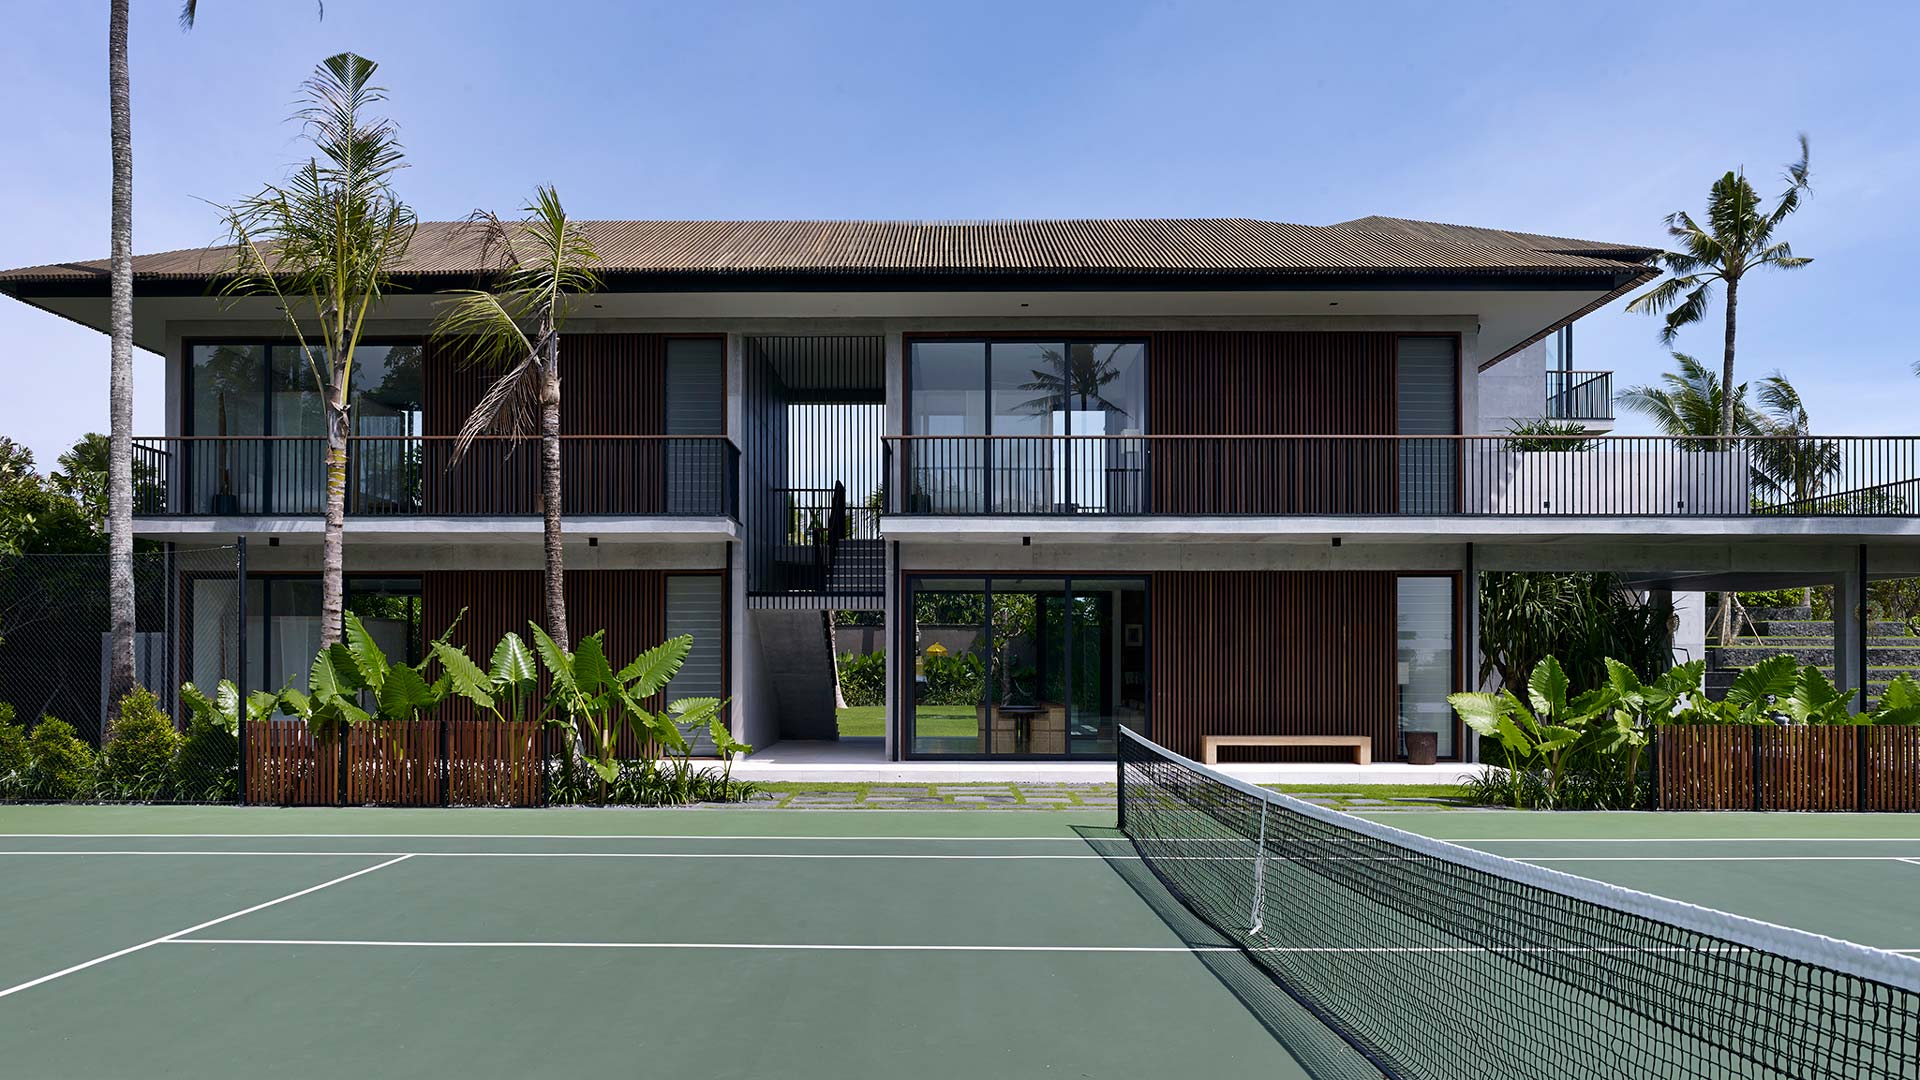 Bali Villas with Tennis Courts - Ultimate Bali Luxury Villas